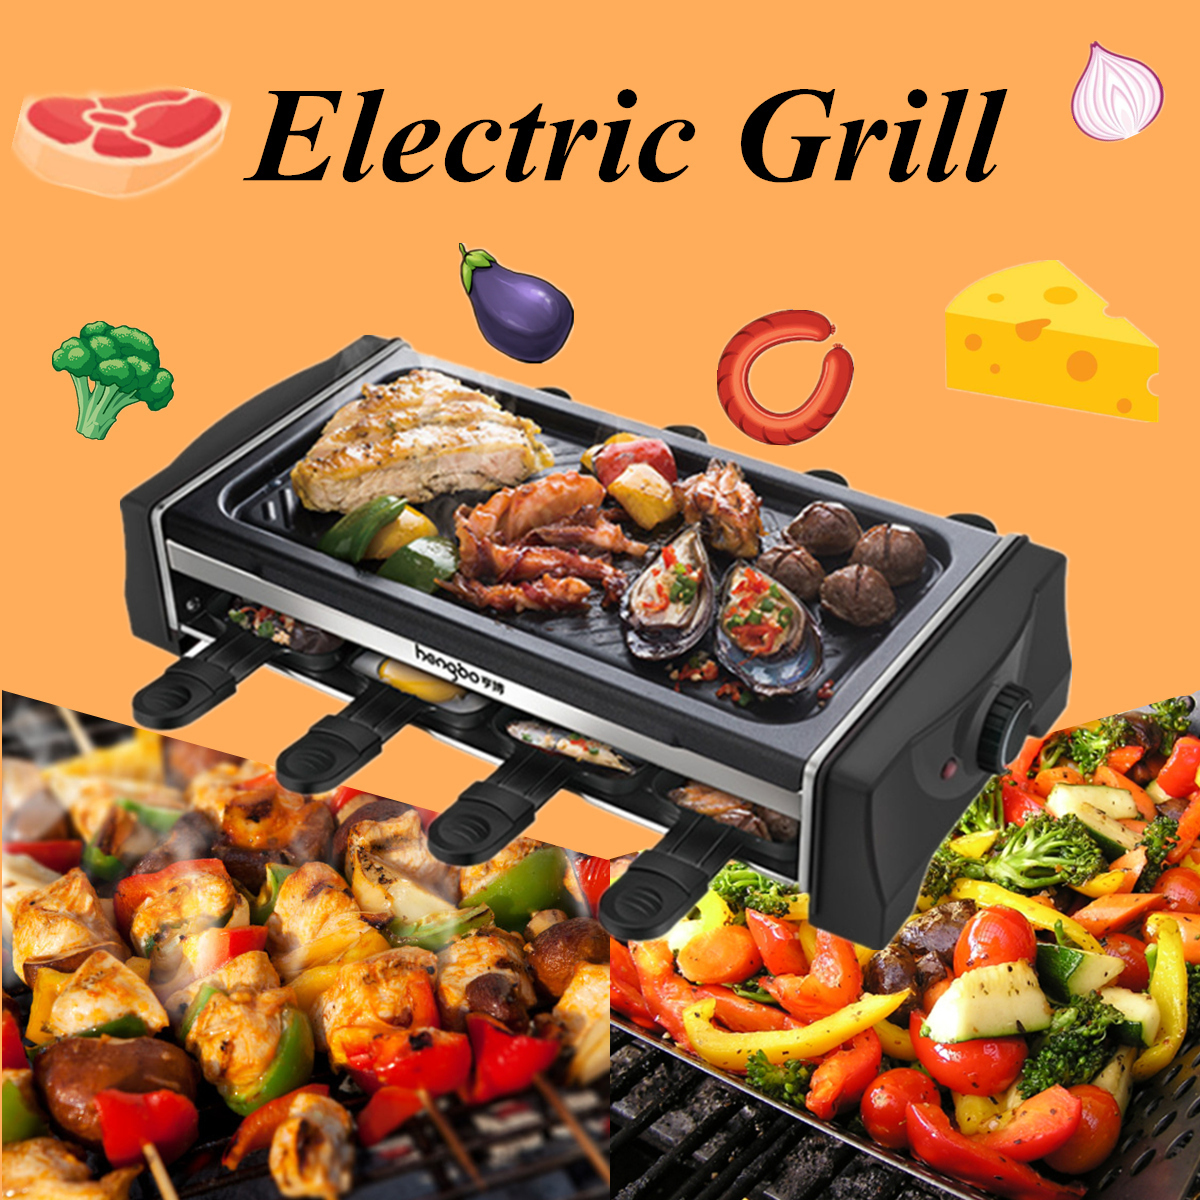 Electric BBQ Grill Indoor Barbecue Raclette Non-Stick Cooking BBQ Griddle Table Top